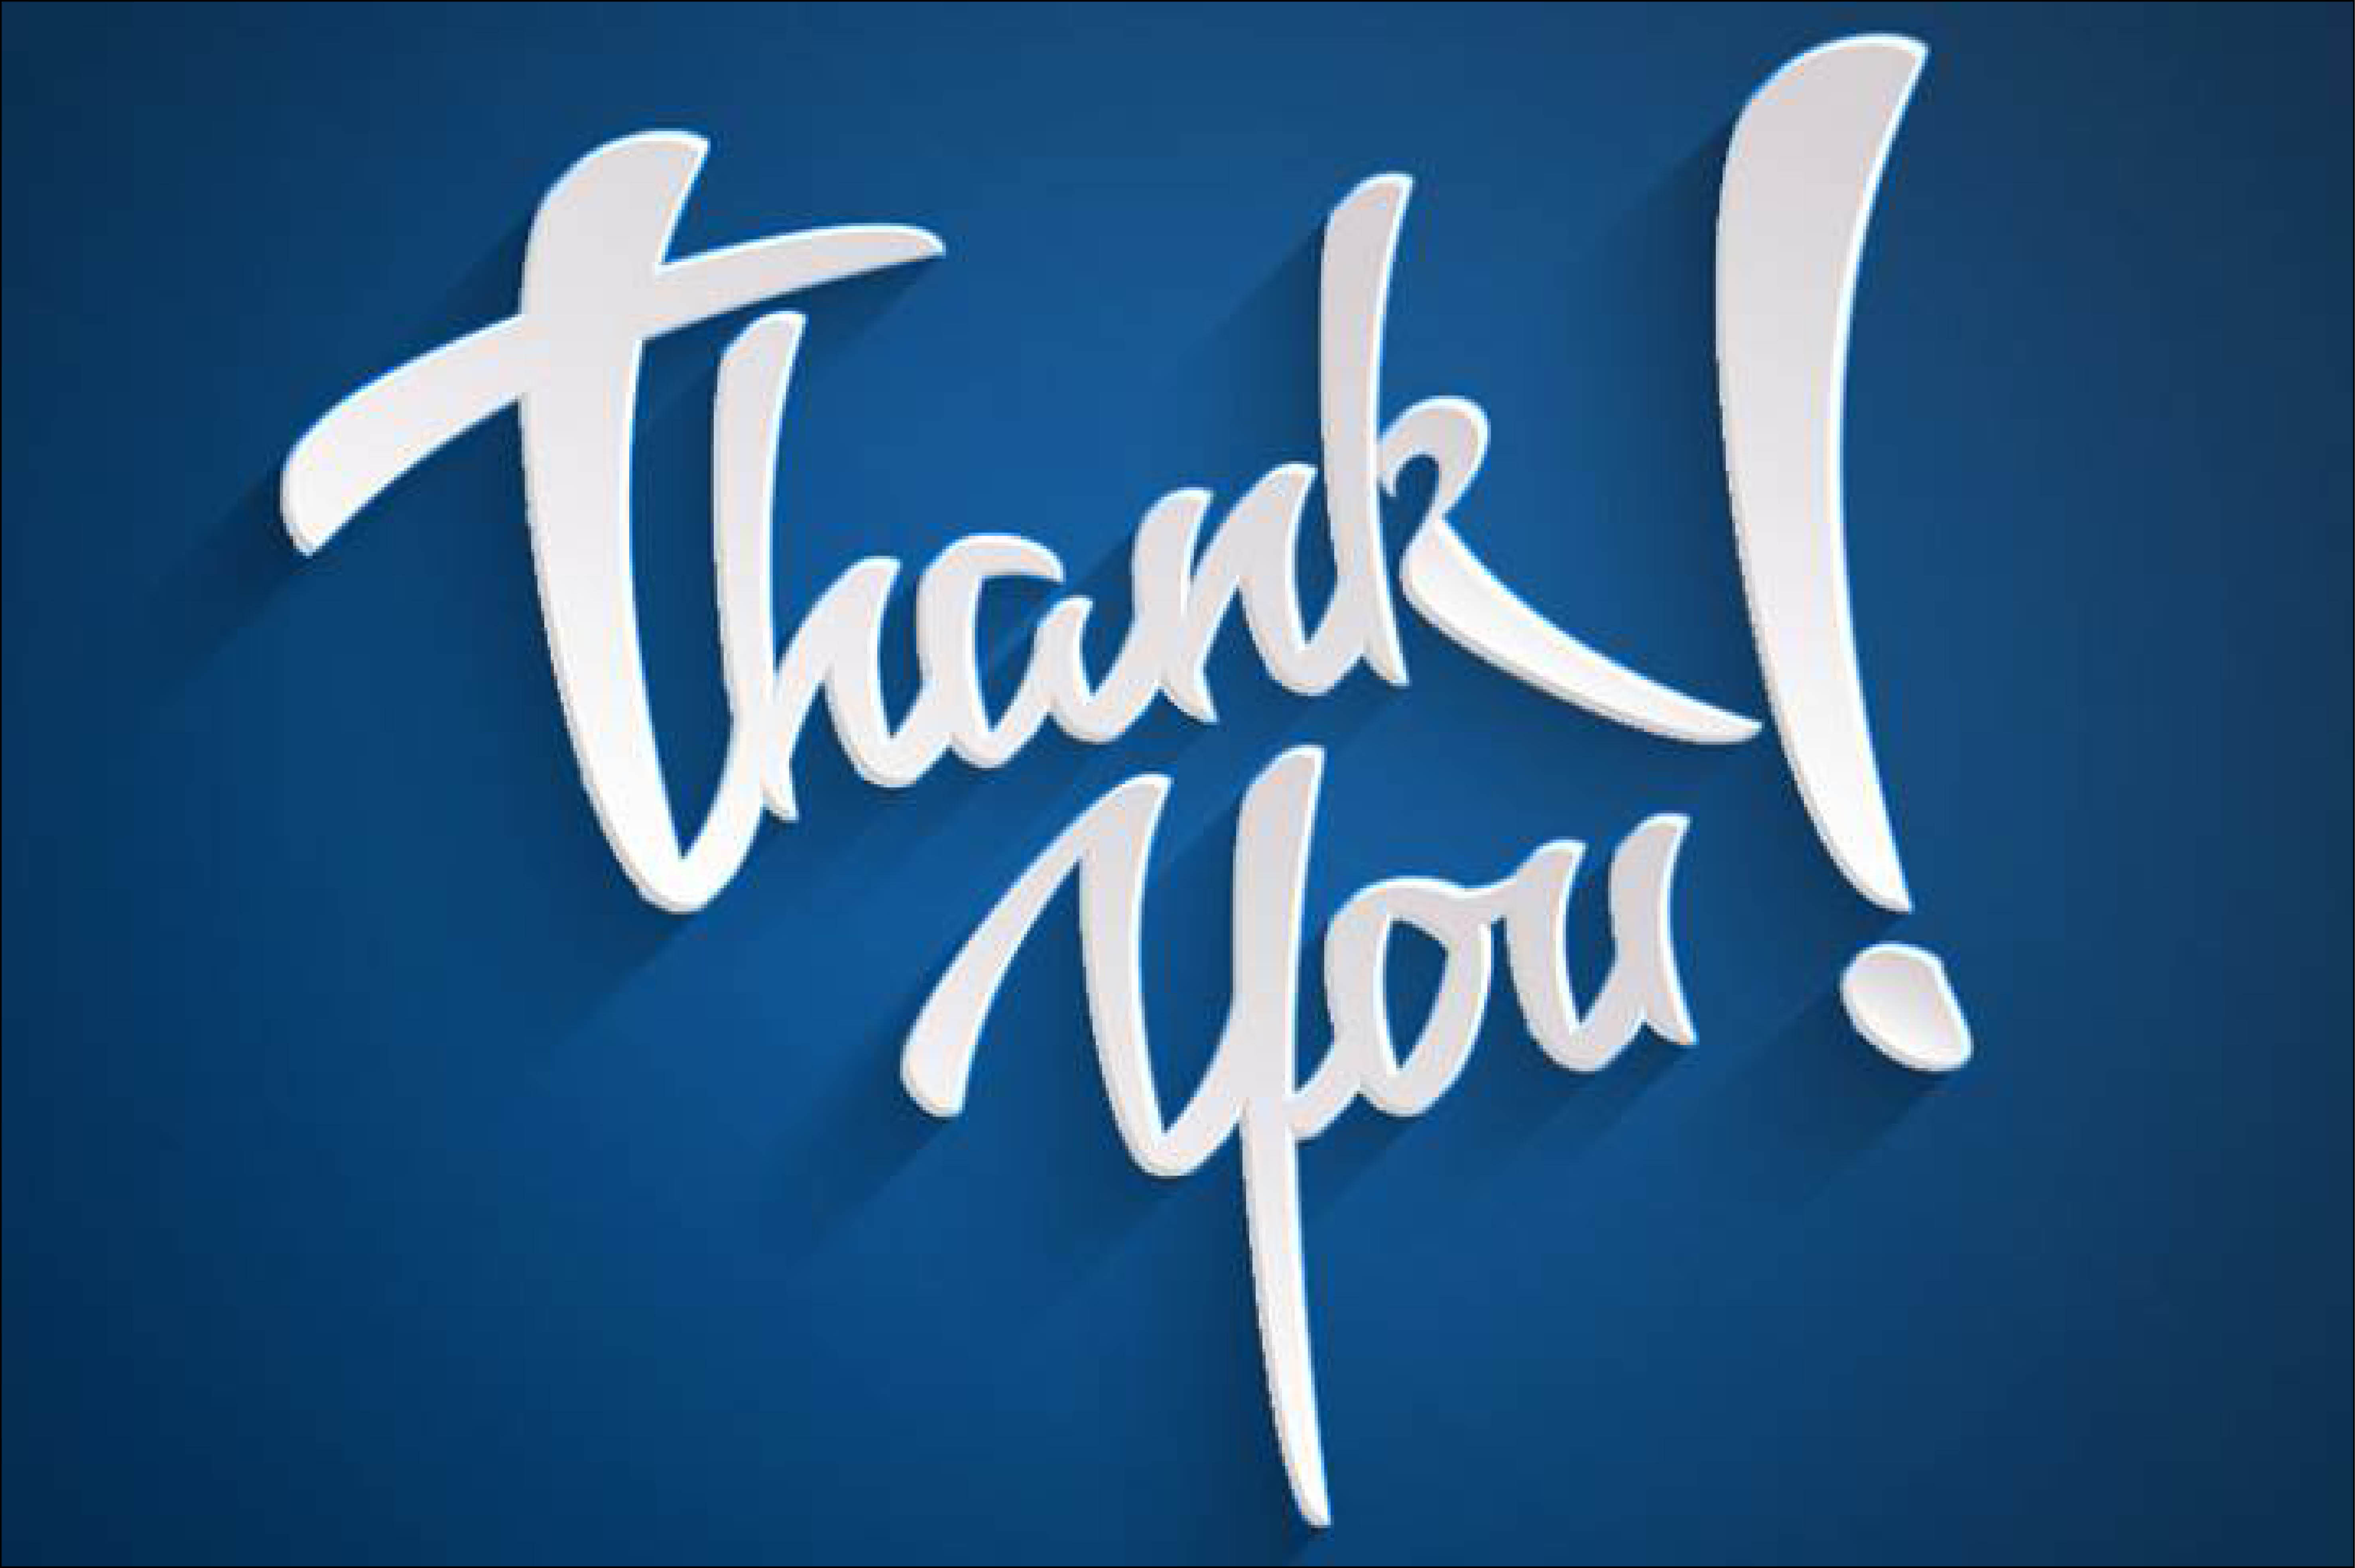 graphic of giant script thank you written in white on blue background